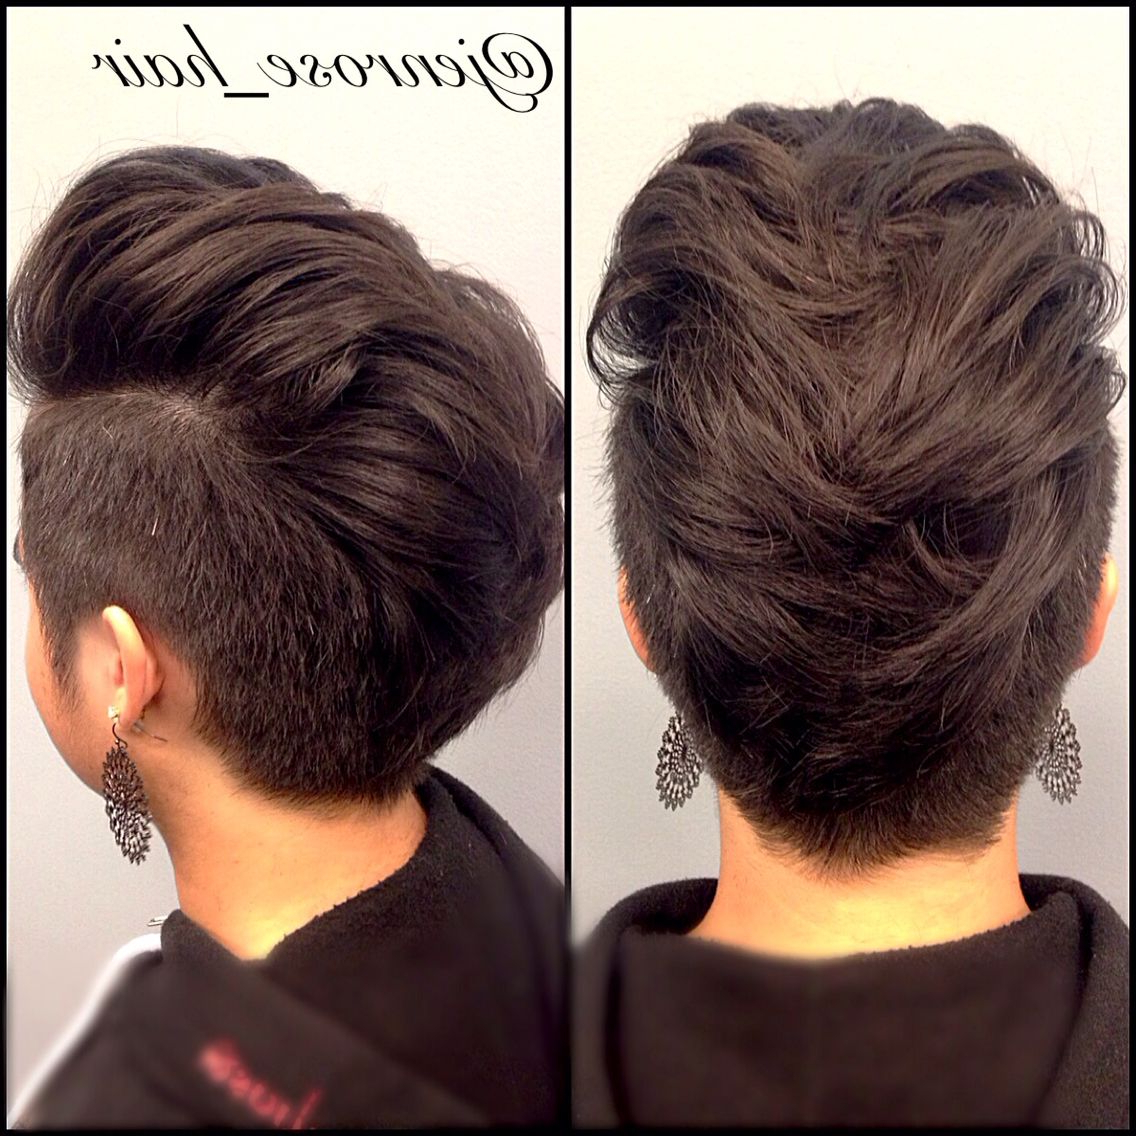 Latest Tattoo You Tonight Faux Hawk Hairstyles Throughout Women's Faux Hawk With Shaved Sides. Shorts Women's Hair Cut (View 3 of 20)